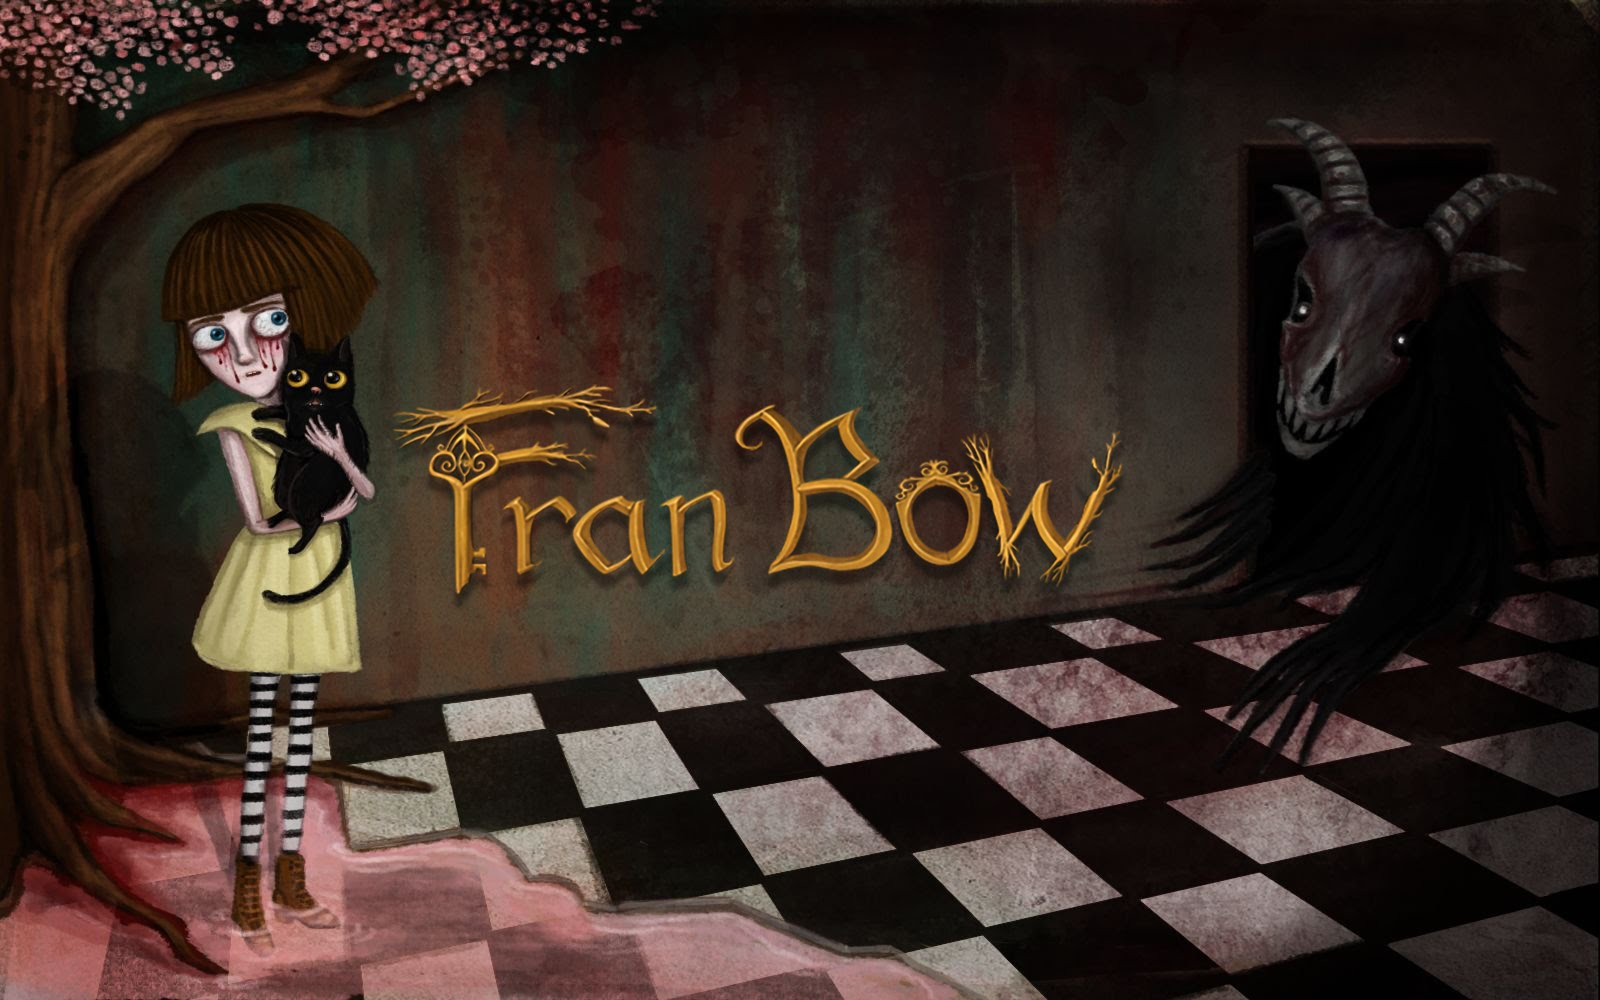 Revisiting fran bow beautiful terrible bliss the koalition